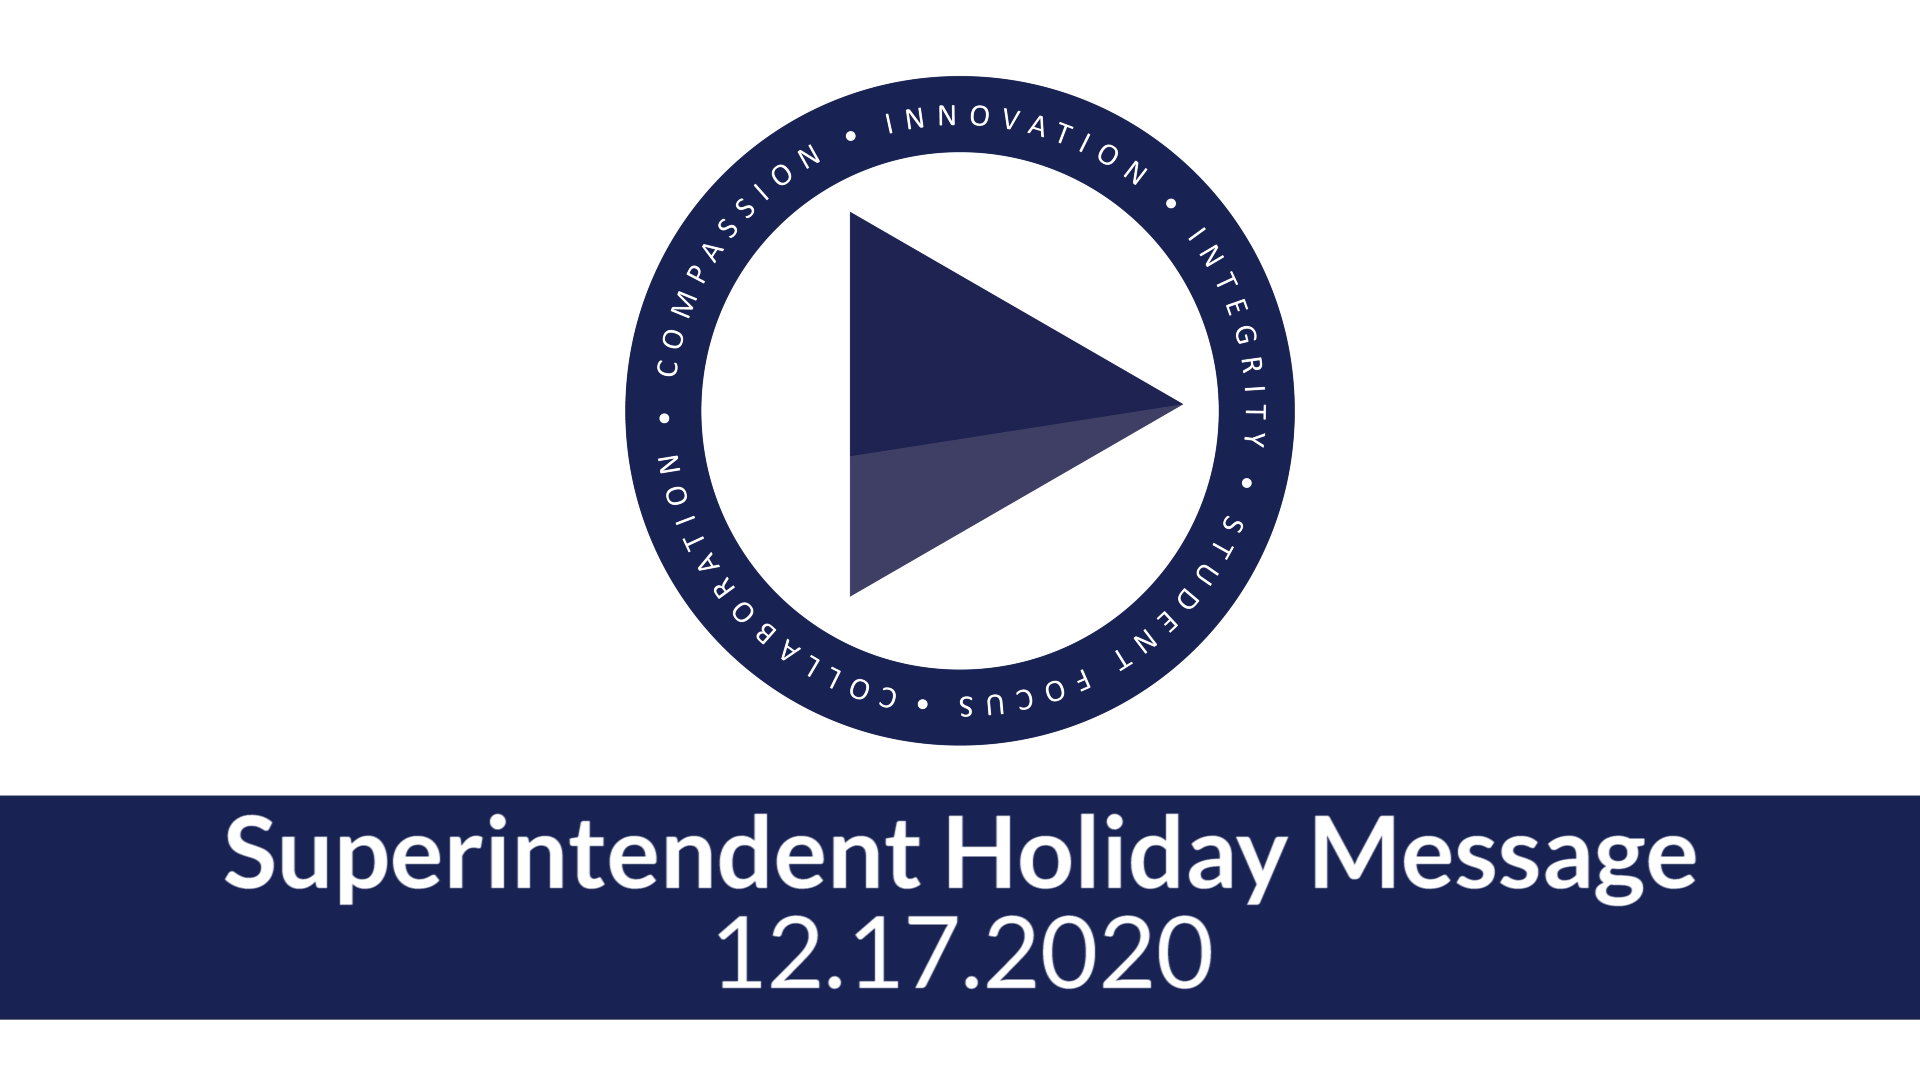 Superintendent Holiday Message 12.17.2020